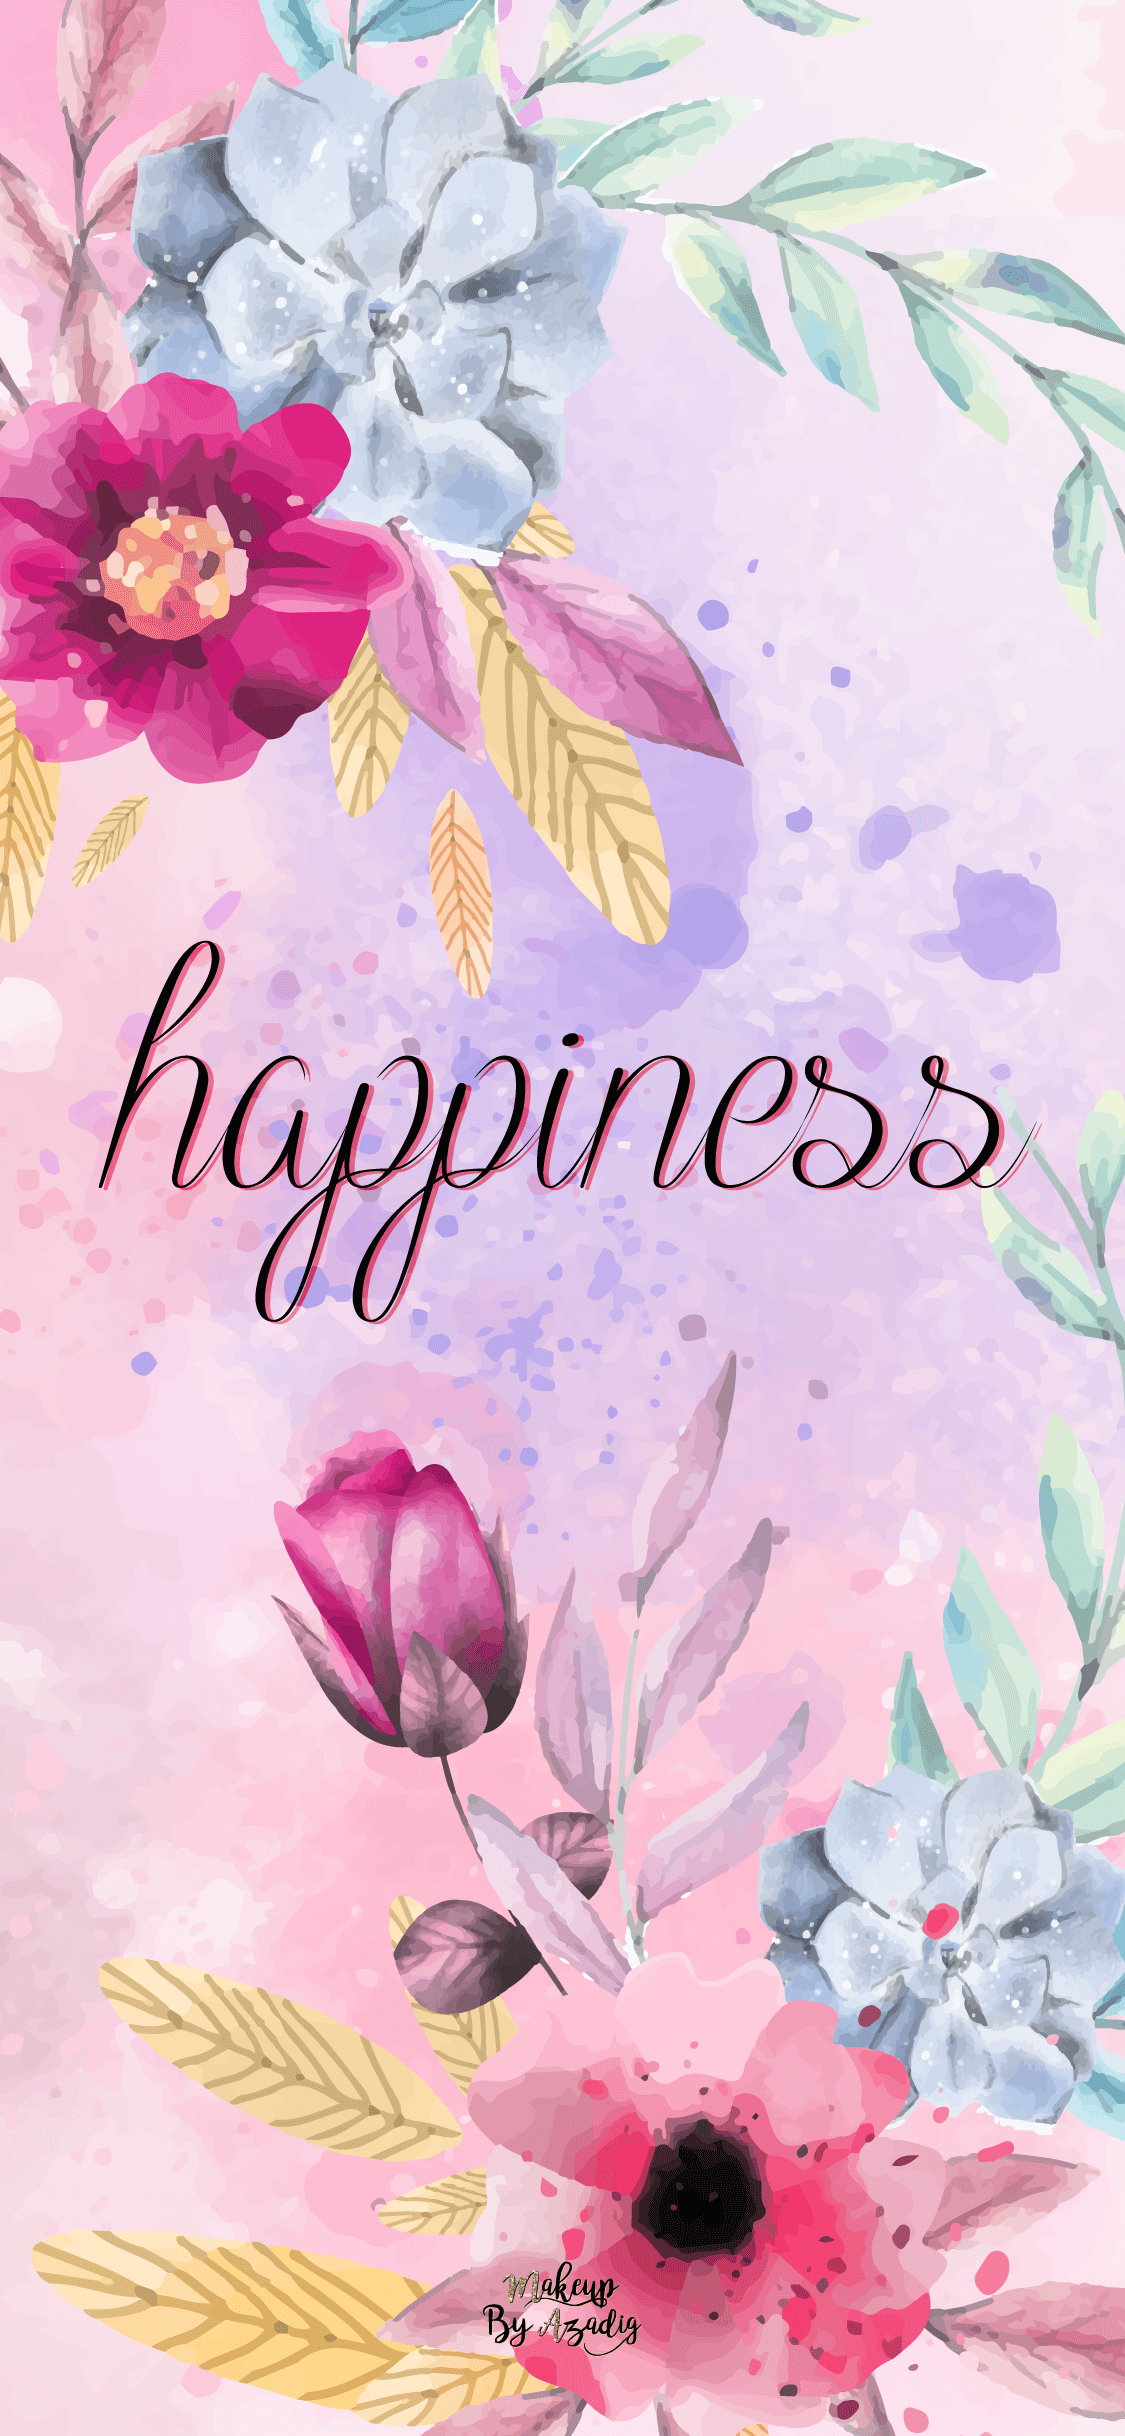 fond-decran-wallpaper-happiness-bonheur-joie-iphone-X-makeupbyazadig-tendance